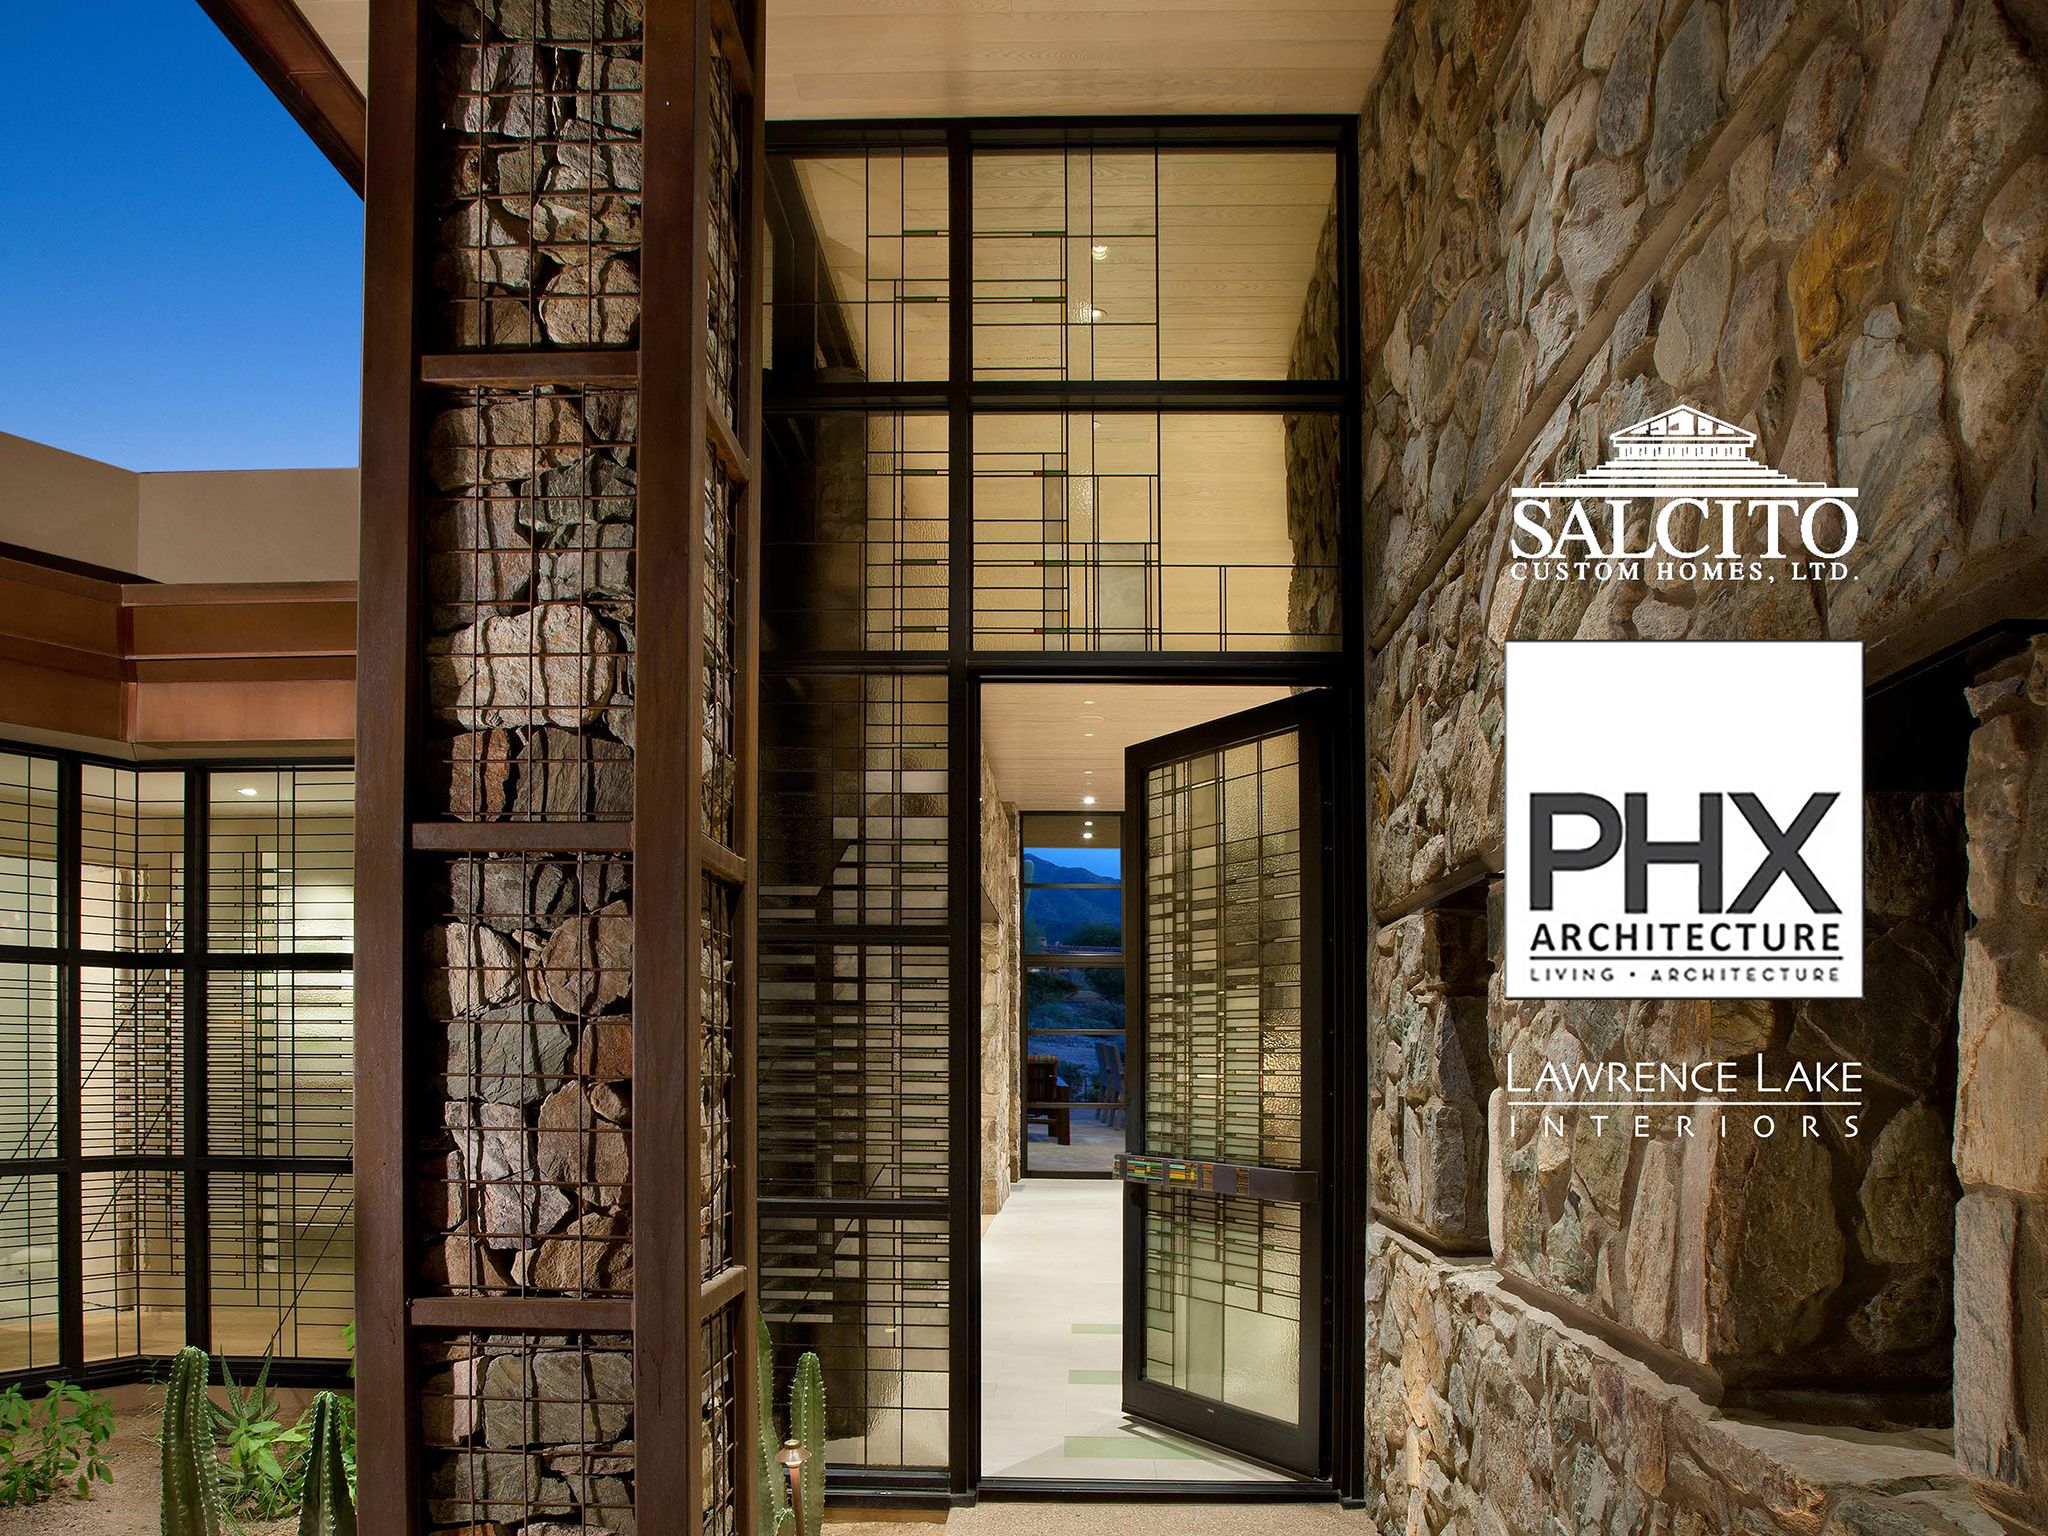 Stylish Phoenix architecture is redefined at our source PHX Architecture.  #ad http://sourcesfordesign.com/issue3#12